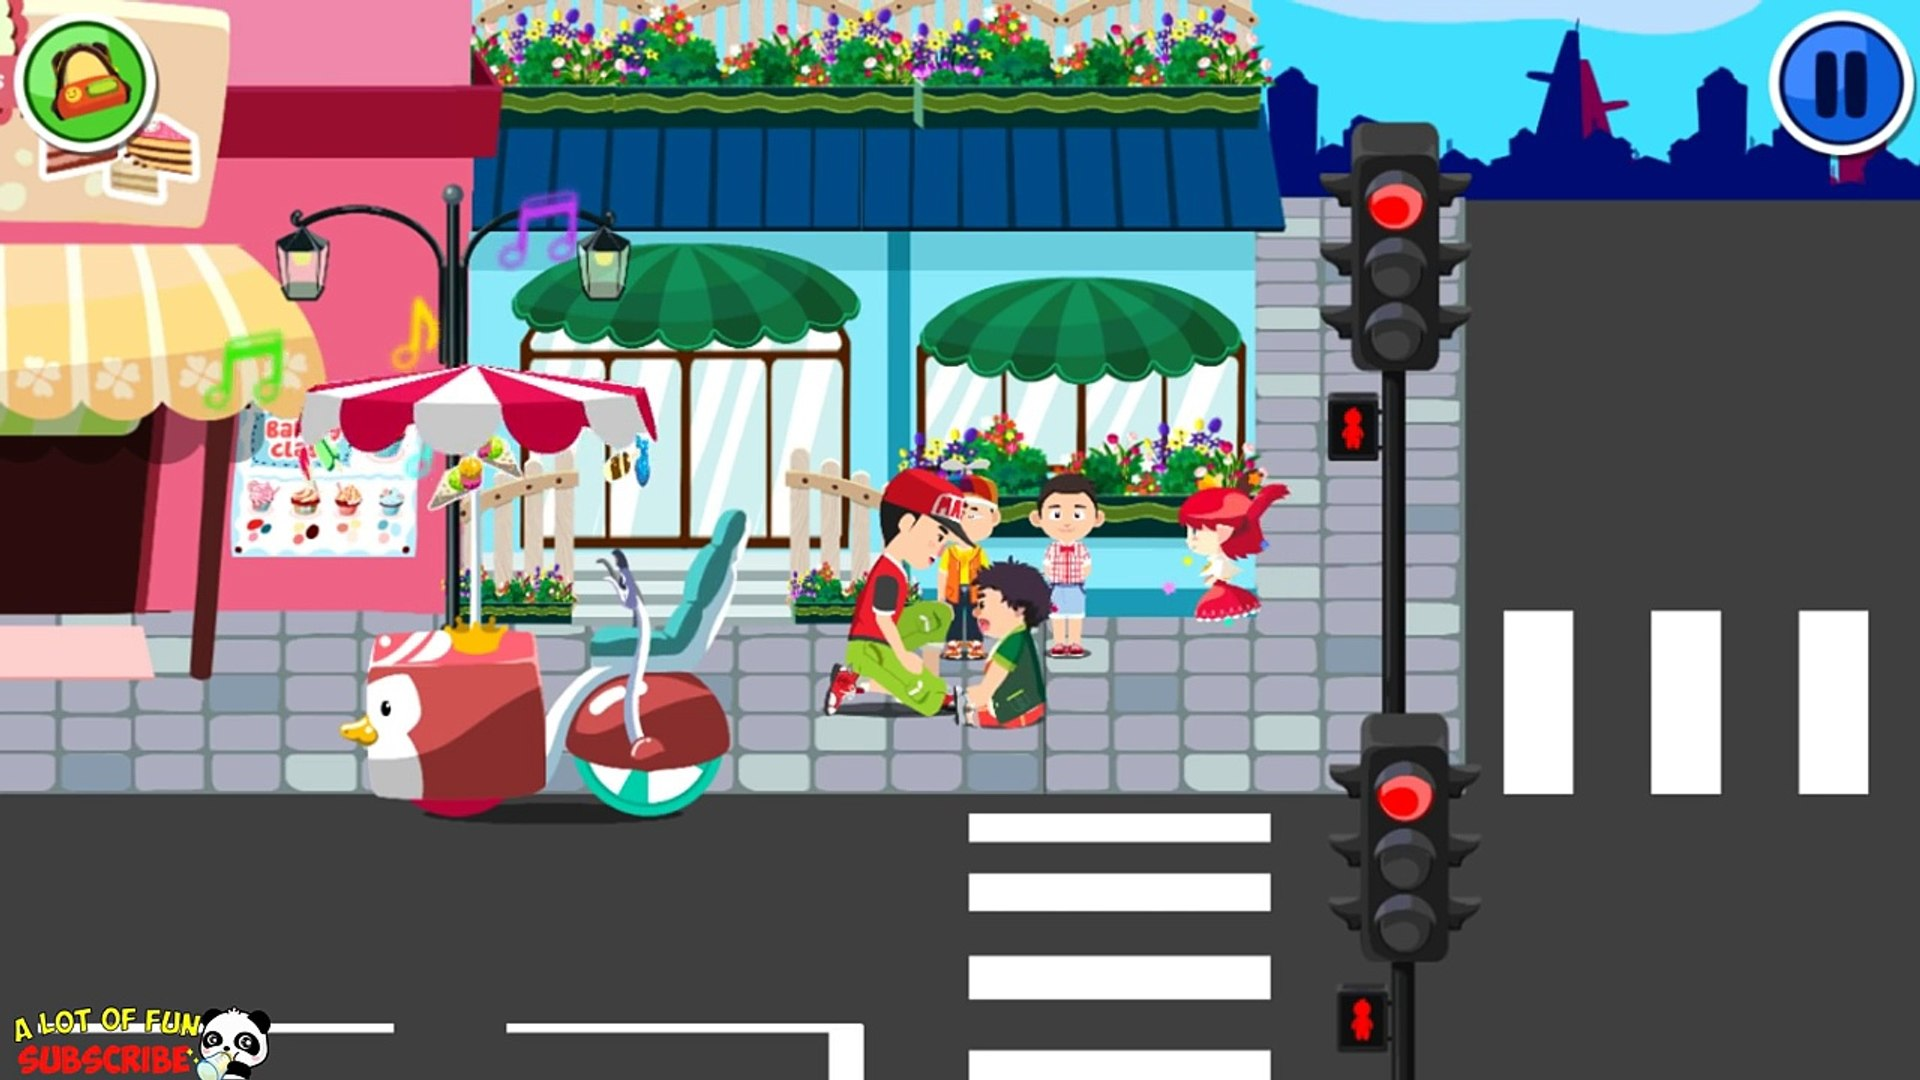 Kids Learn about Safety on the Road & Streets: Safety Tips for kids - Education game